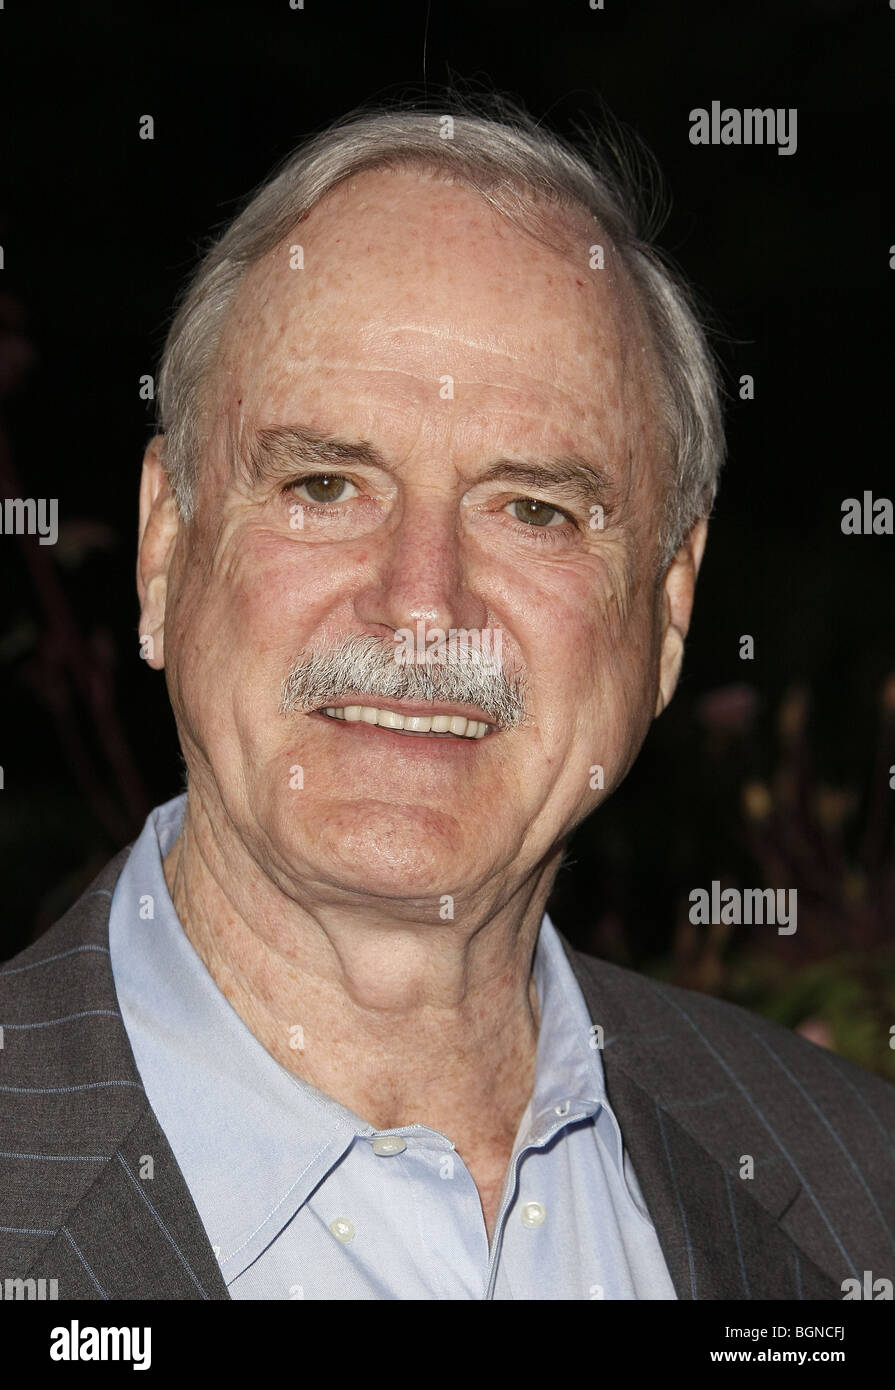 Discussion on this topic: Laura Valdivia, john-cleese-born-1939/